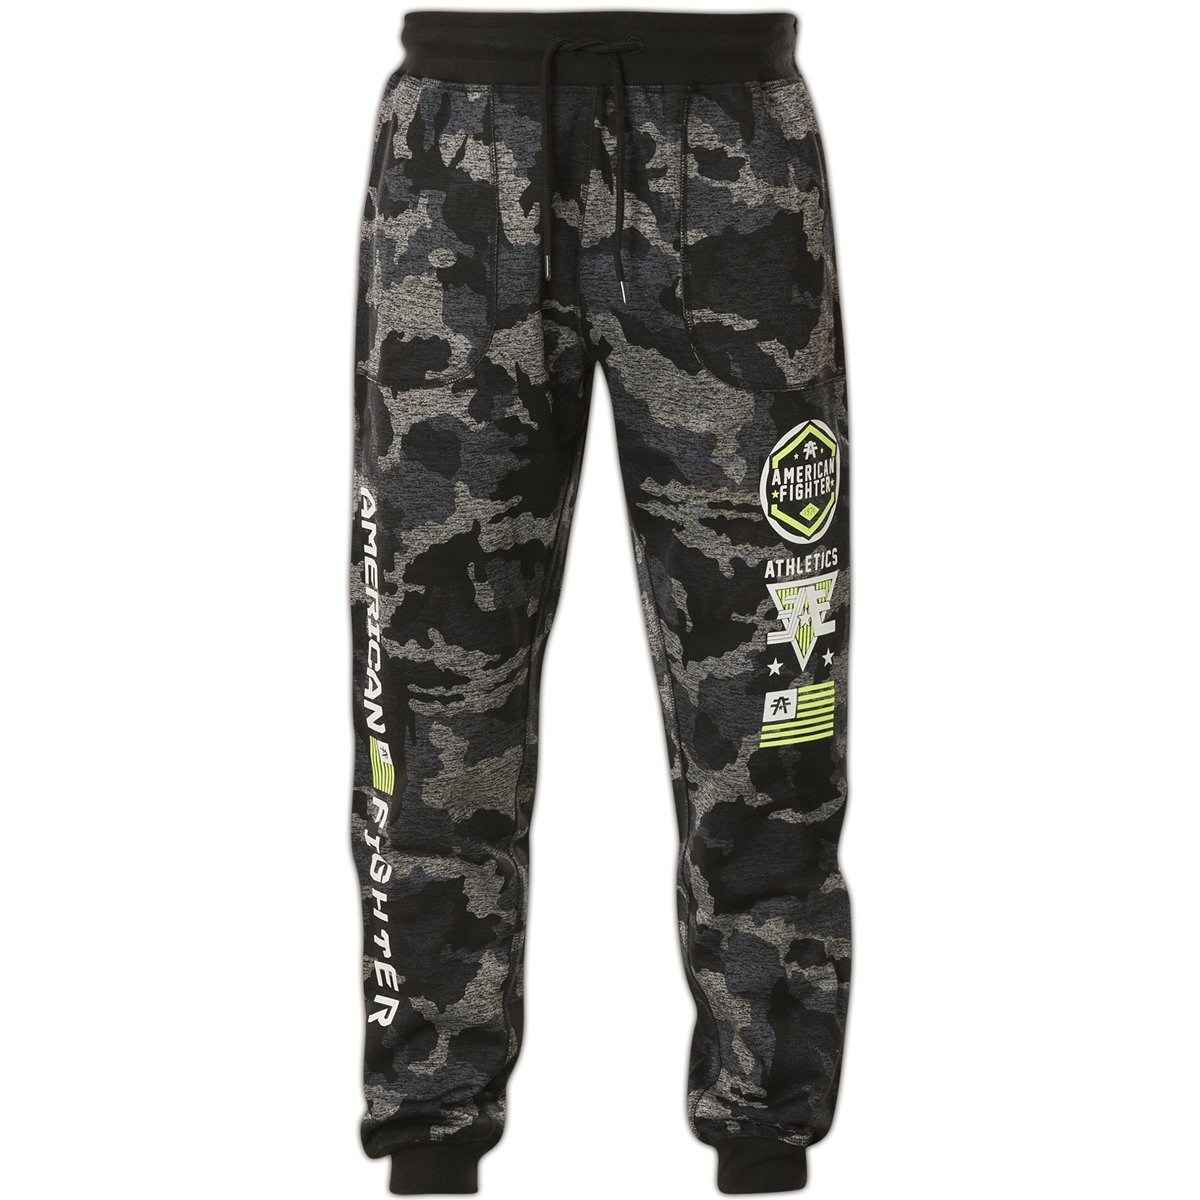 American Fighter by Affliction Sweatpants Reverse Double Take Jogger Camouflage Schwarz